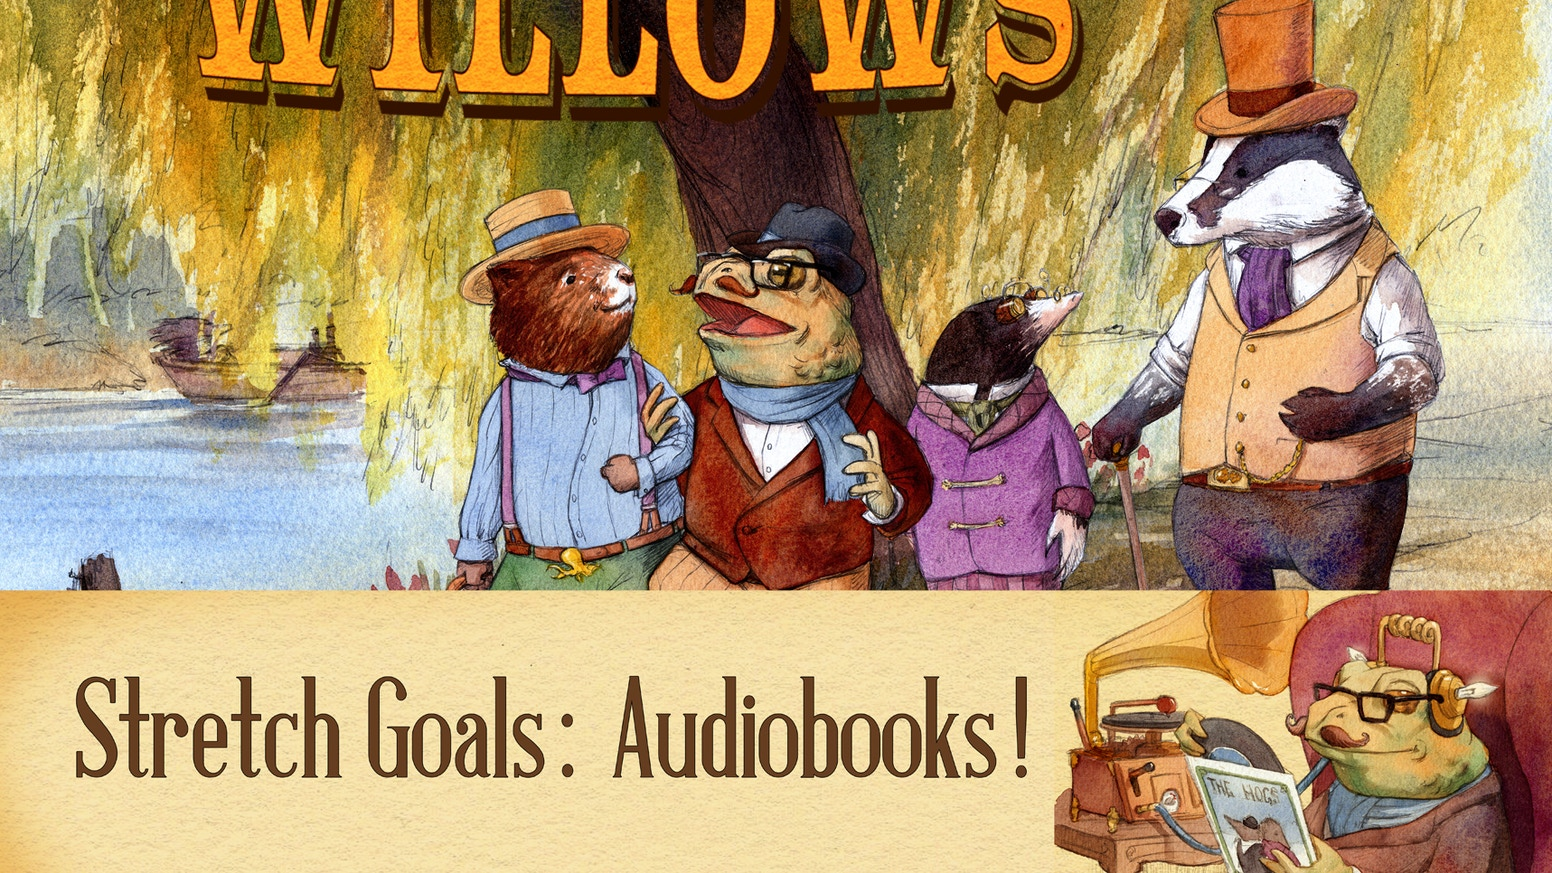 Steam in the Willows - a zietgeist take on a classic tale by